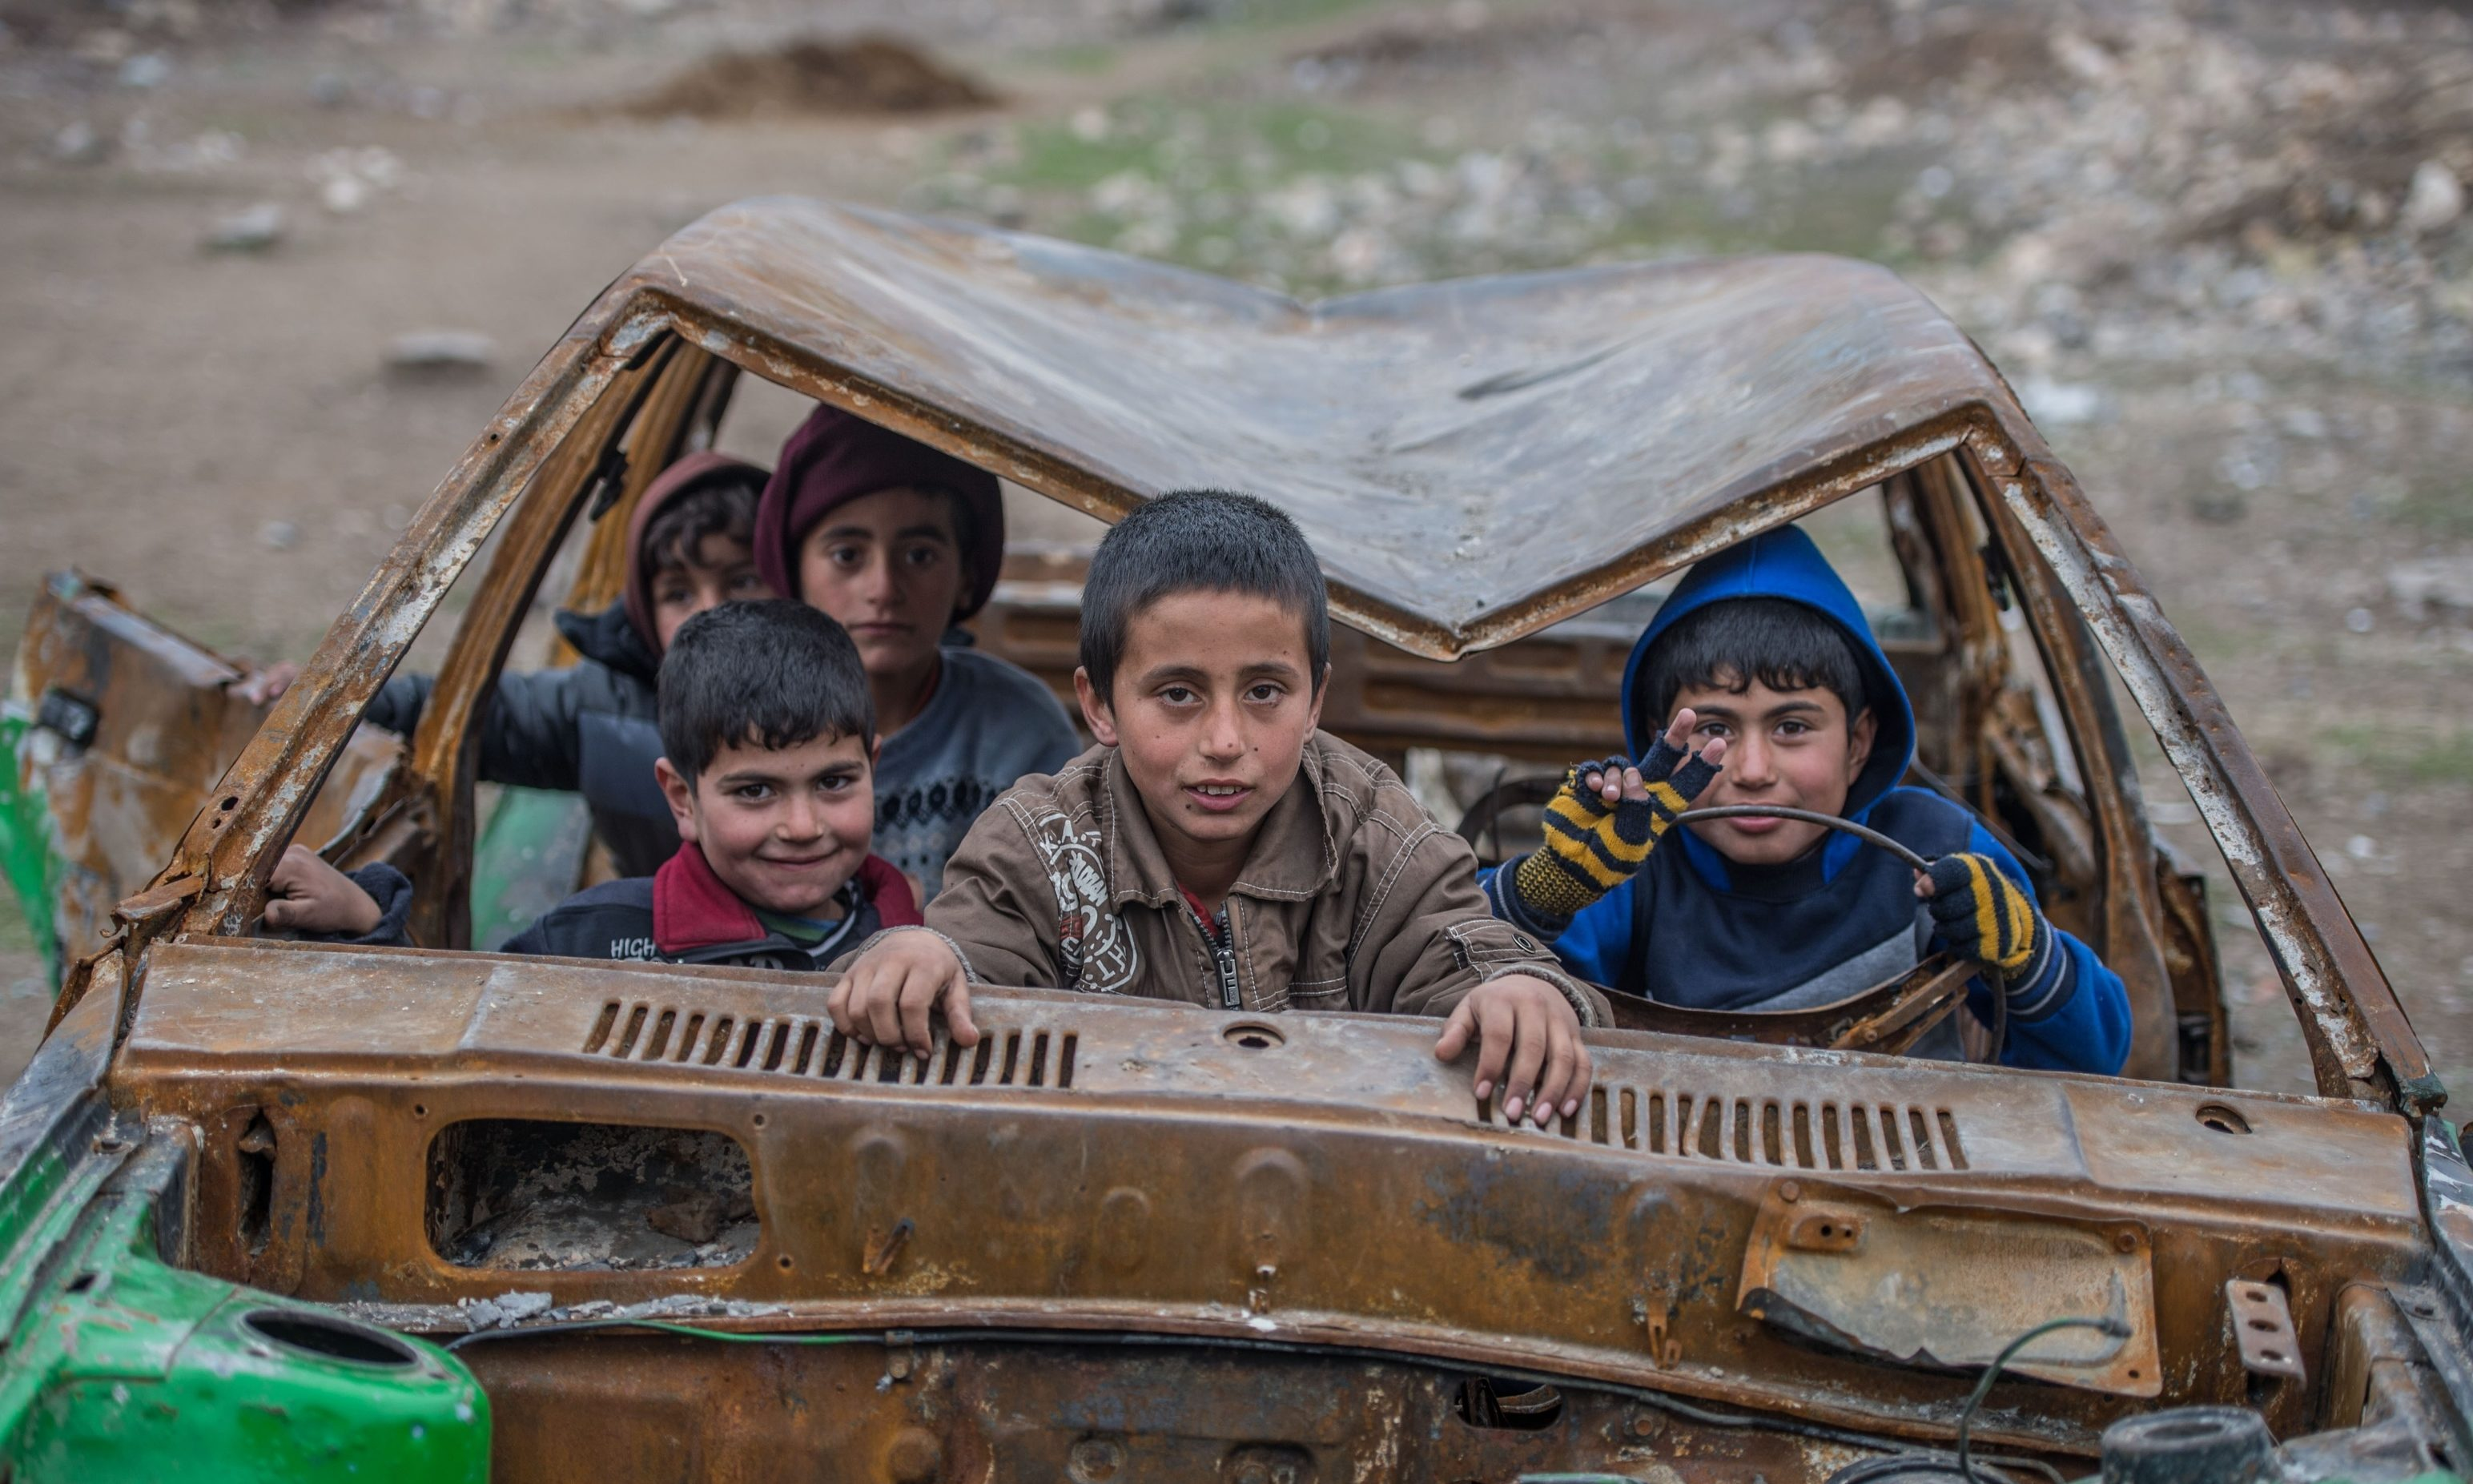 Syrian kids pose for a photograph inside a wreckage of a car in 2016